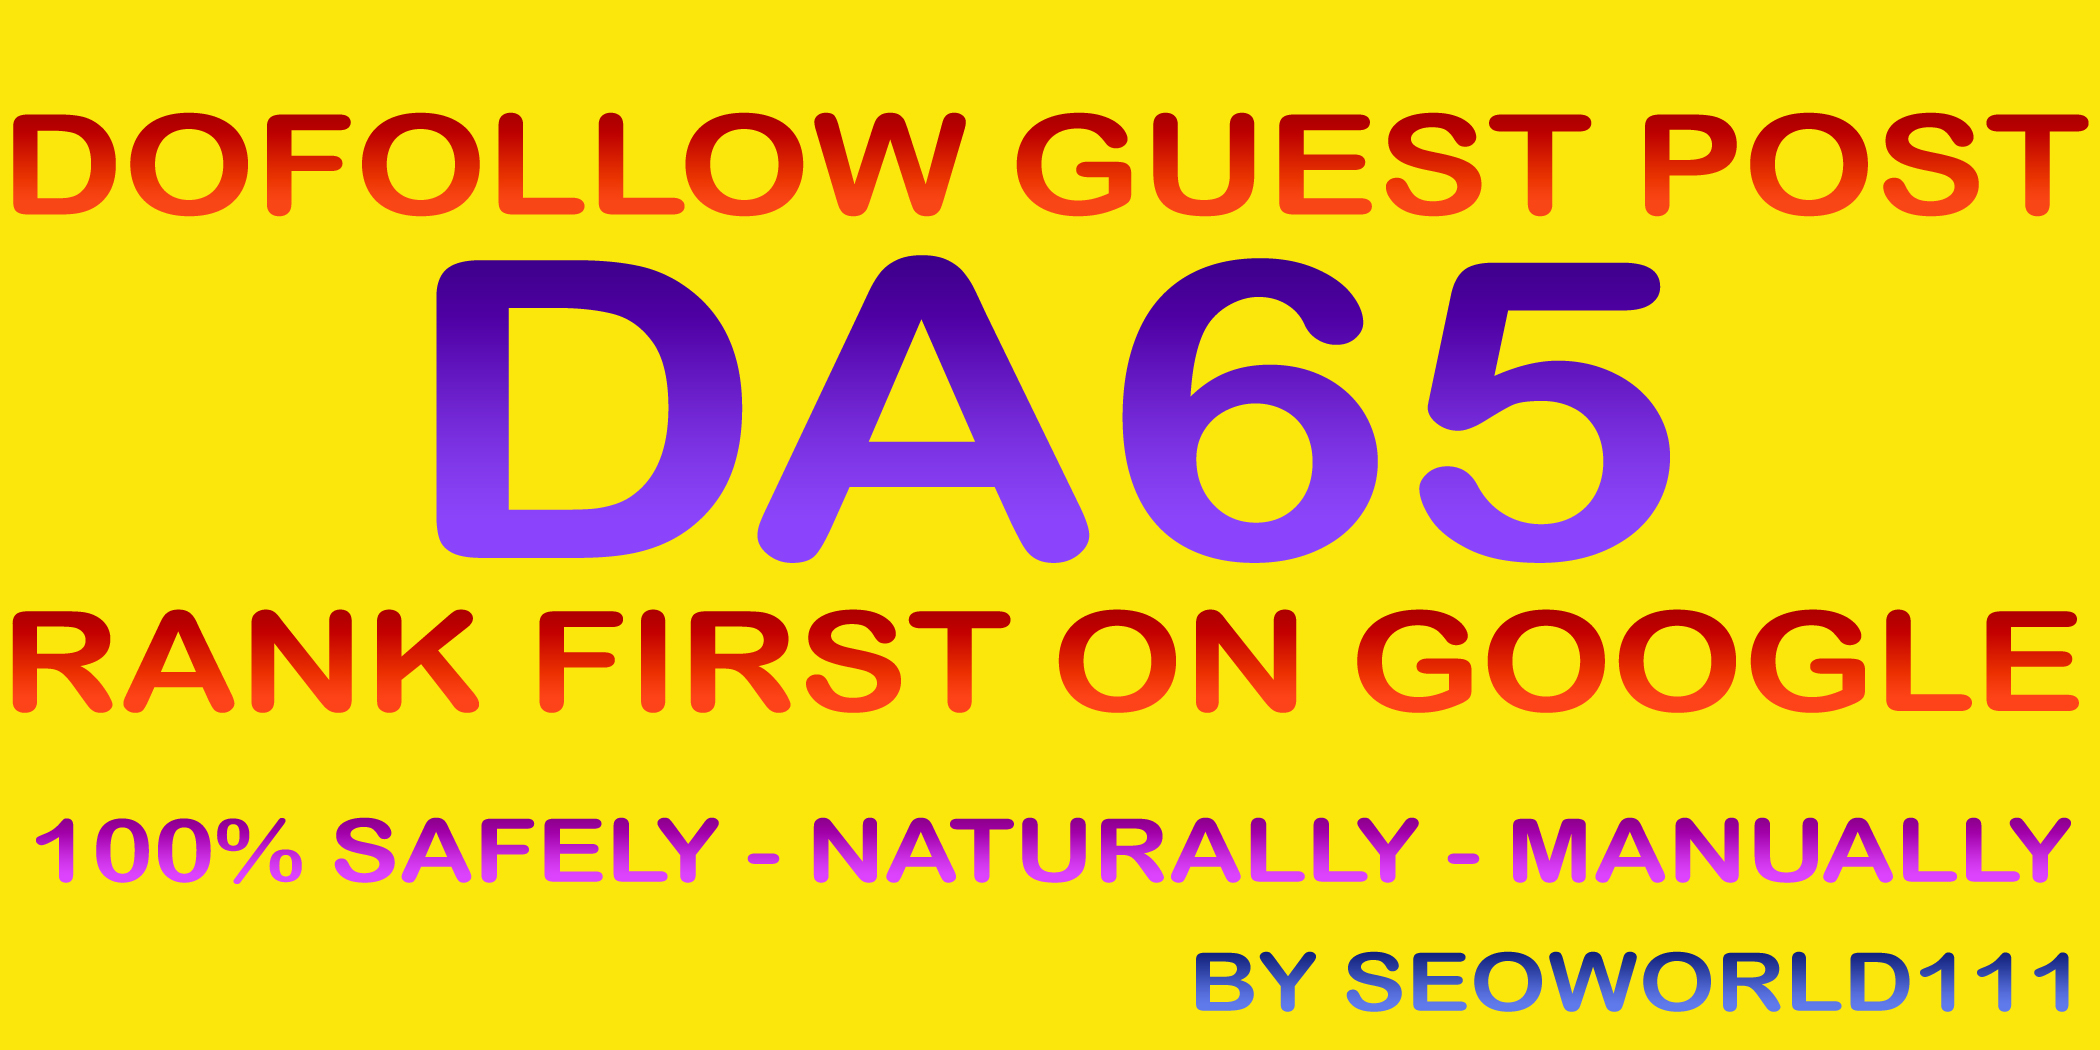 2 Dofollow Guest Post from DA65 News Blogs - All Niche Accept - Rank First On Google